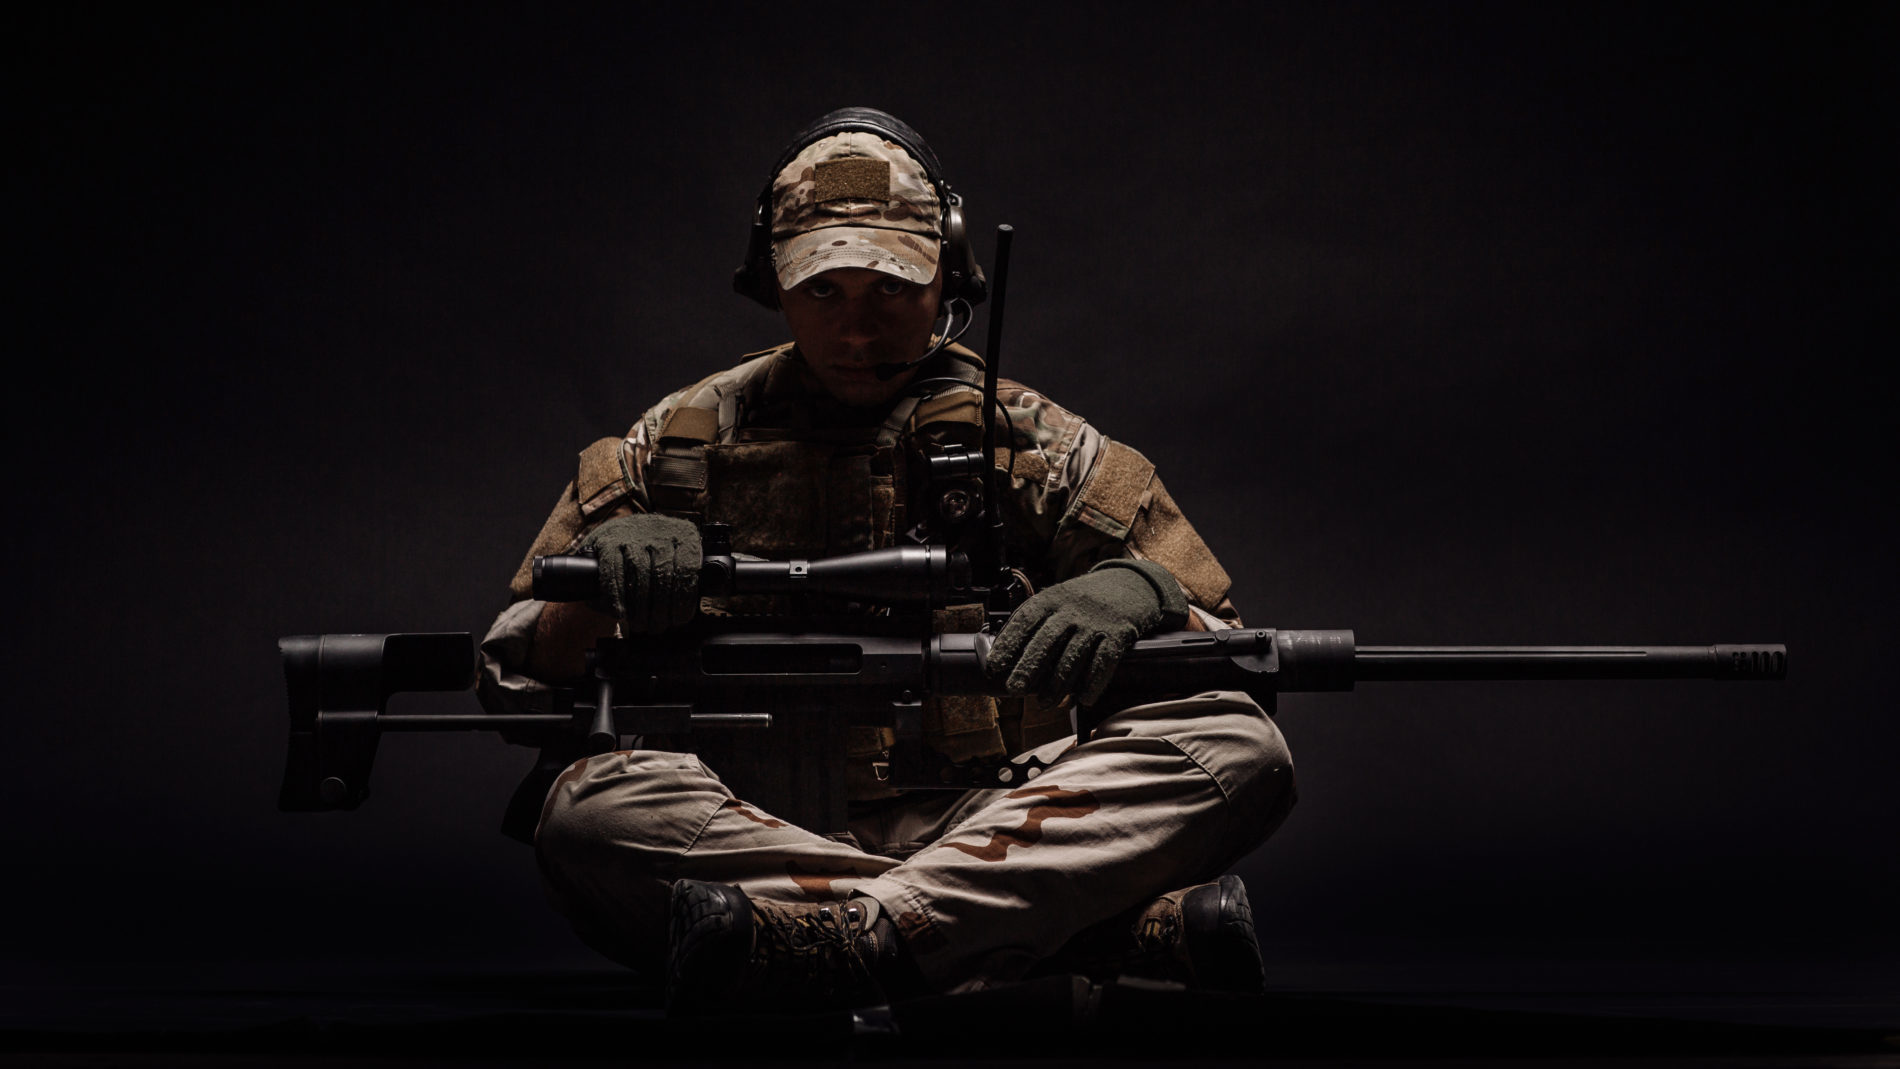 Thermal Targets Canada Military Police Law Snipers Shooters